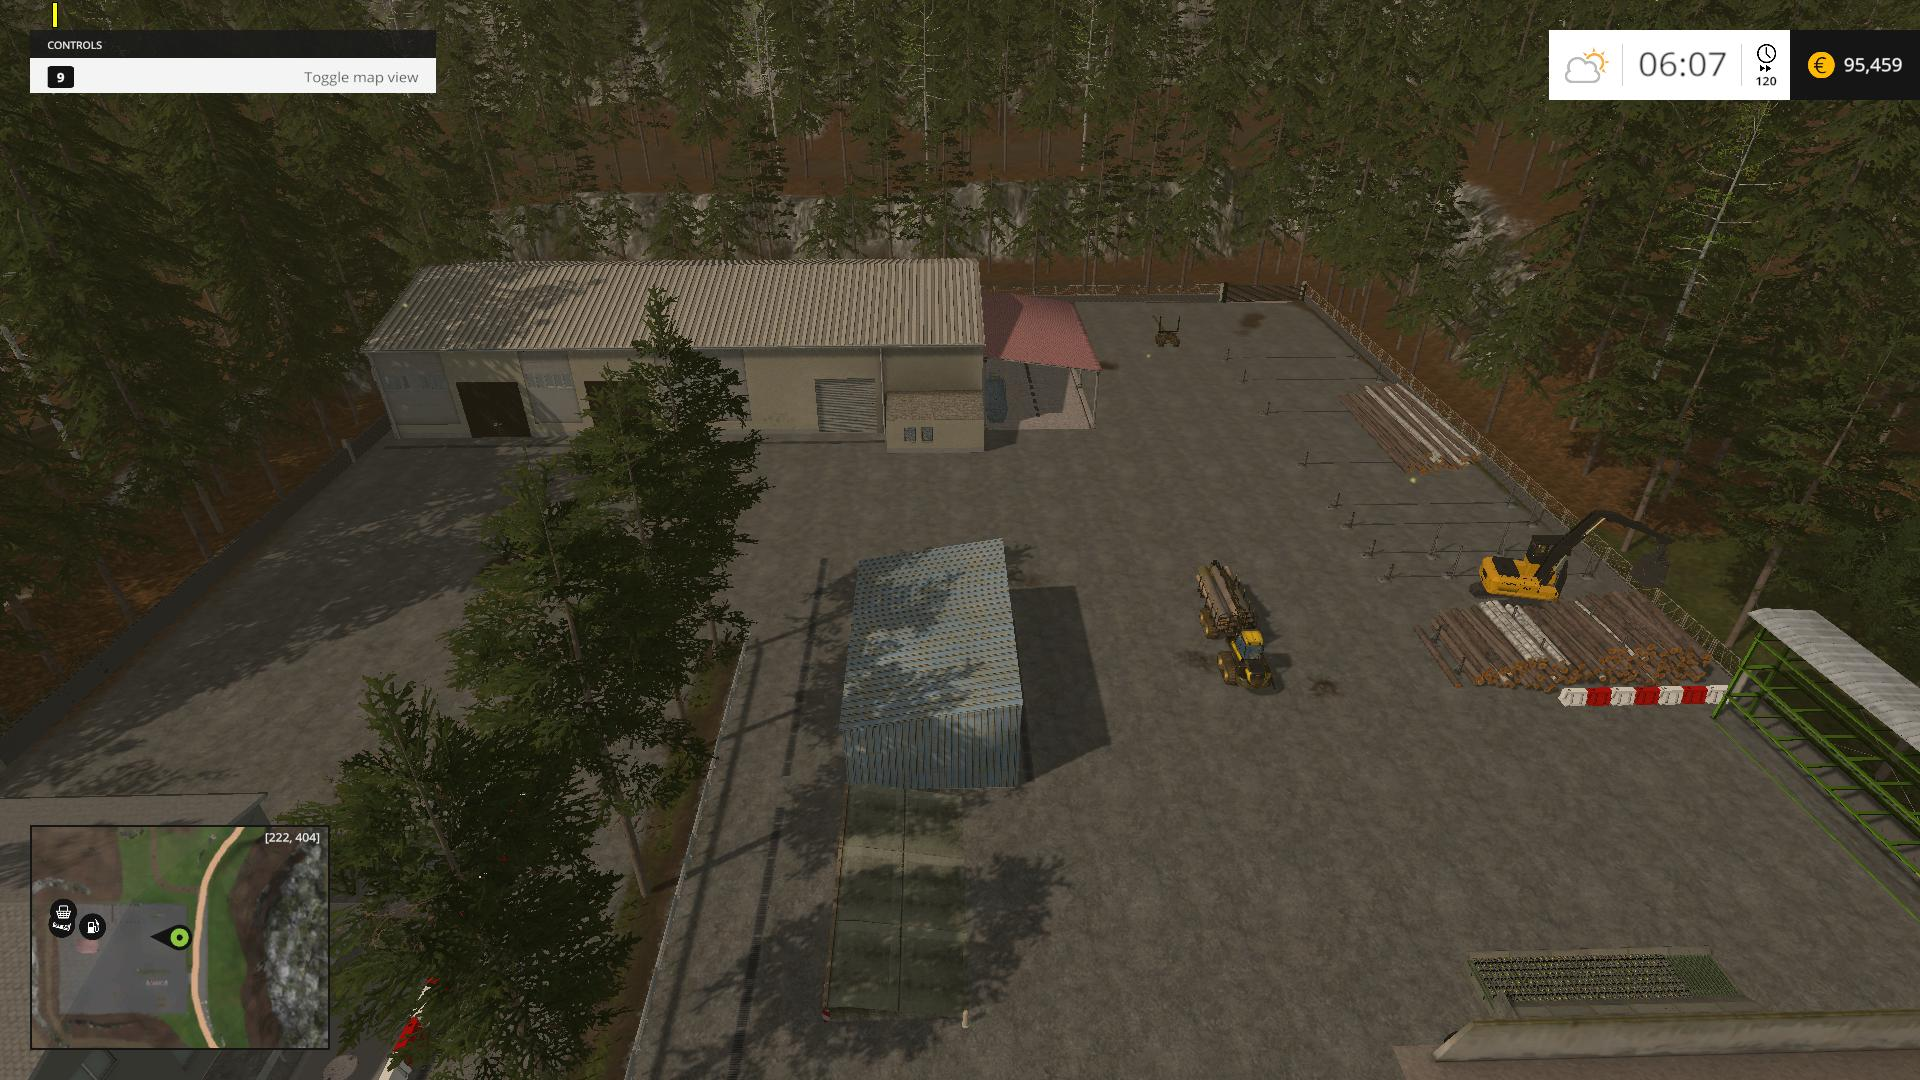 Rock and River Wood map v1.1 » GamesMods.net - FS19, FS17 ...